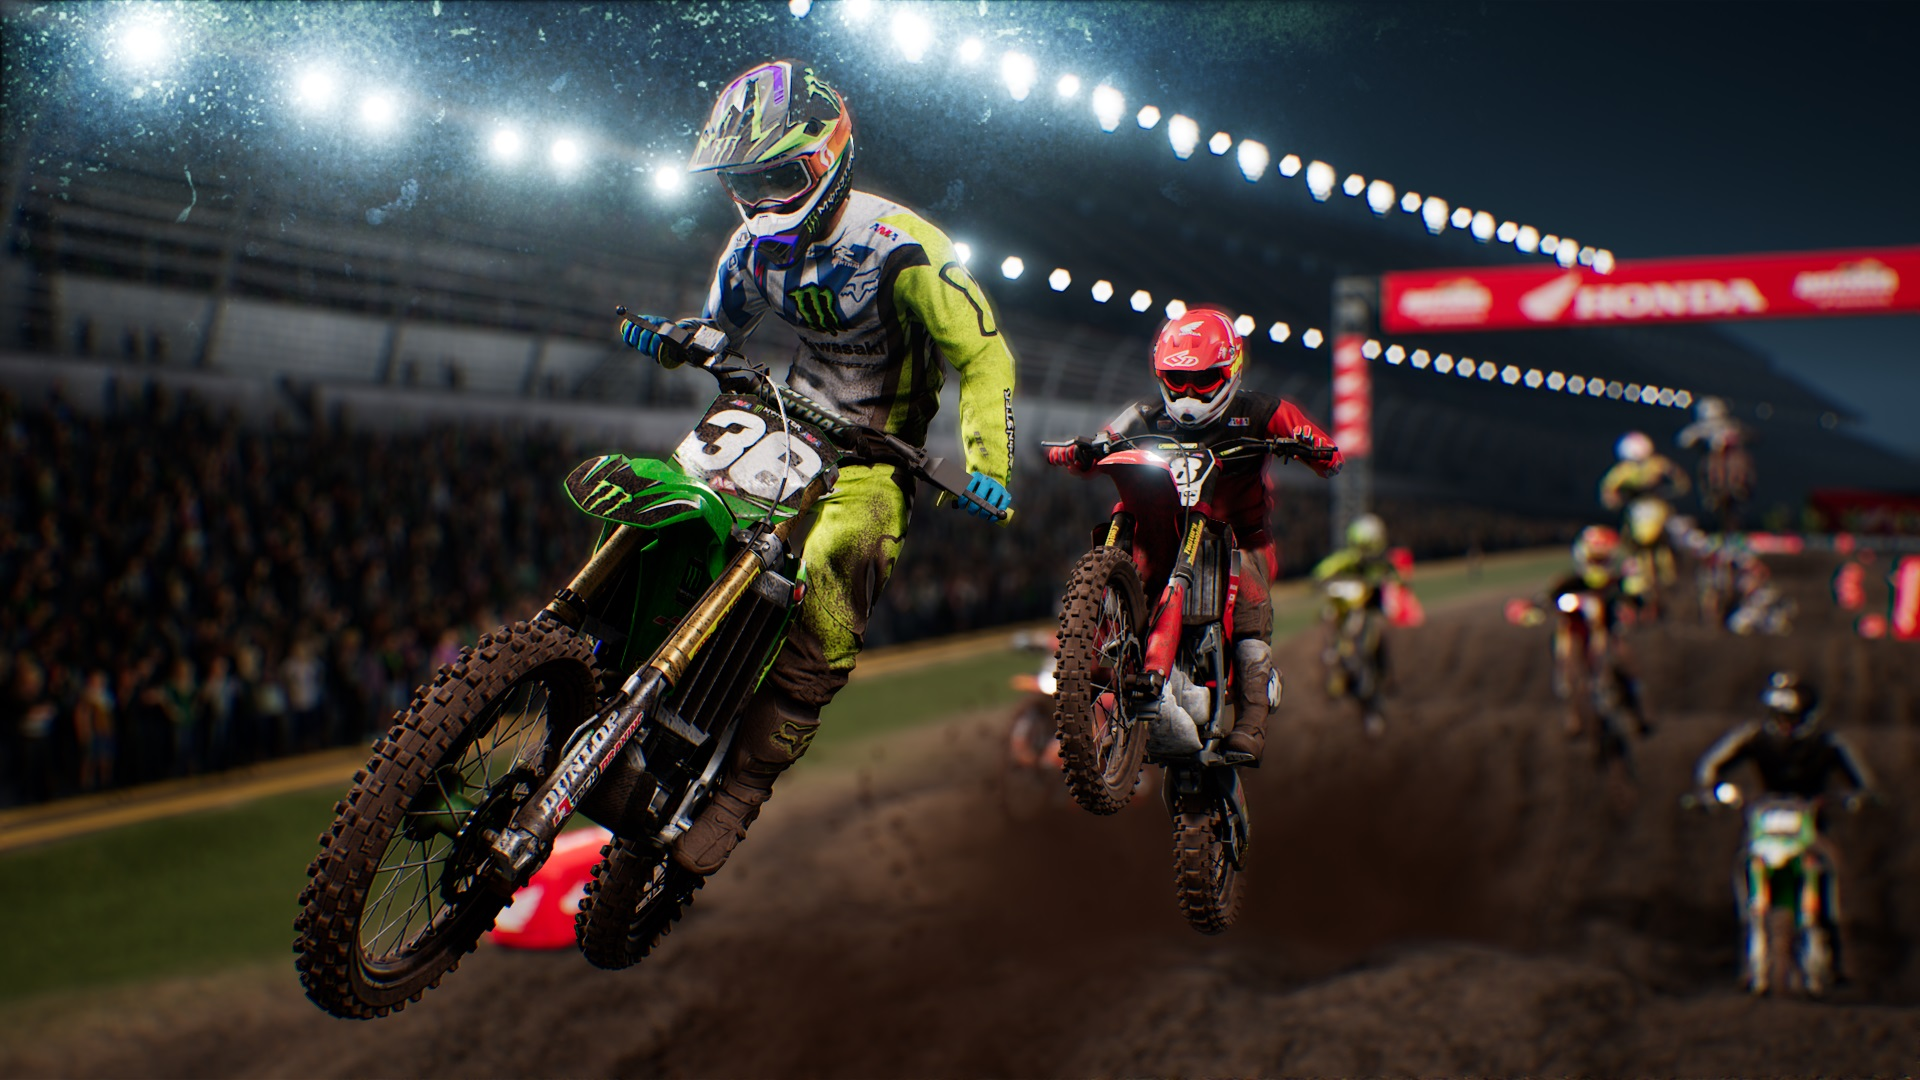 Monster Energy Supercross 2 Xbox One X Gameplay Review ...